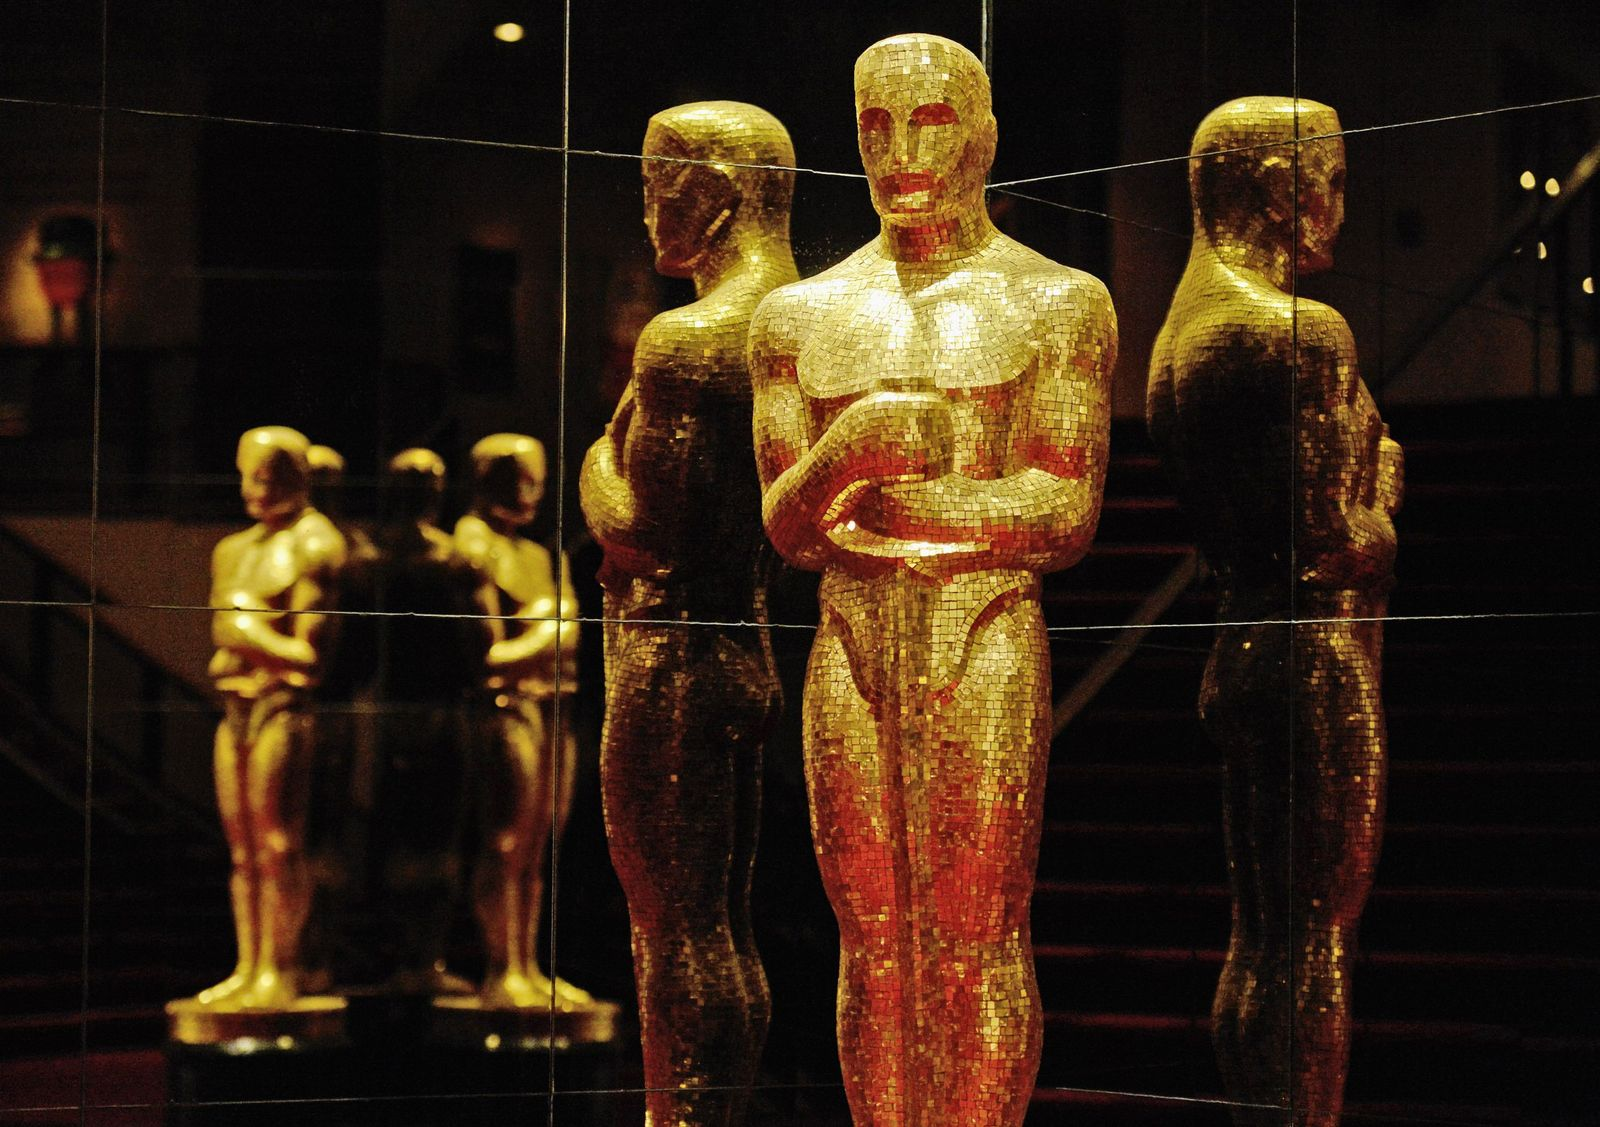 An Oscar statue is seen at the Academy of Television Arts and Sciences following the 85th Academy Awards nominee announcements in Beverly Hills, California